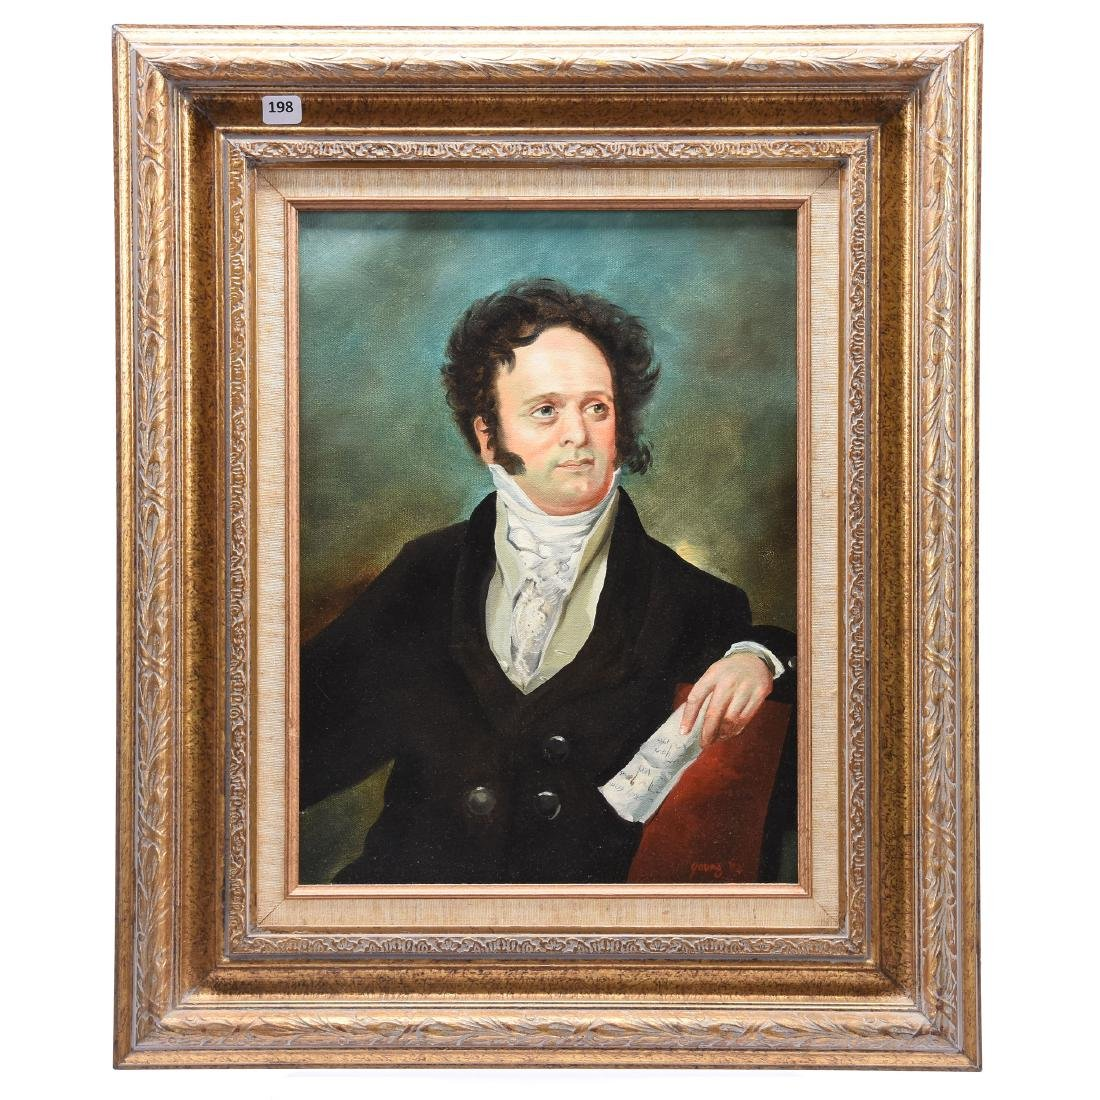 Oil Painting on Canvas, Signed Young, Man in Suit